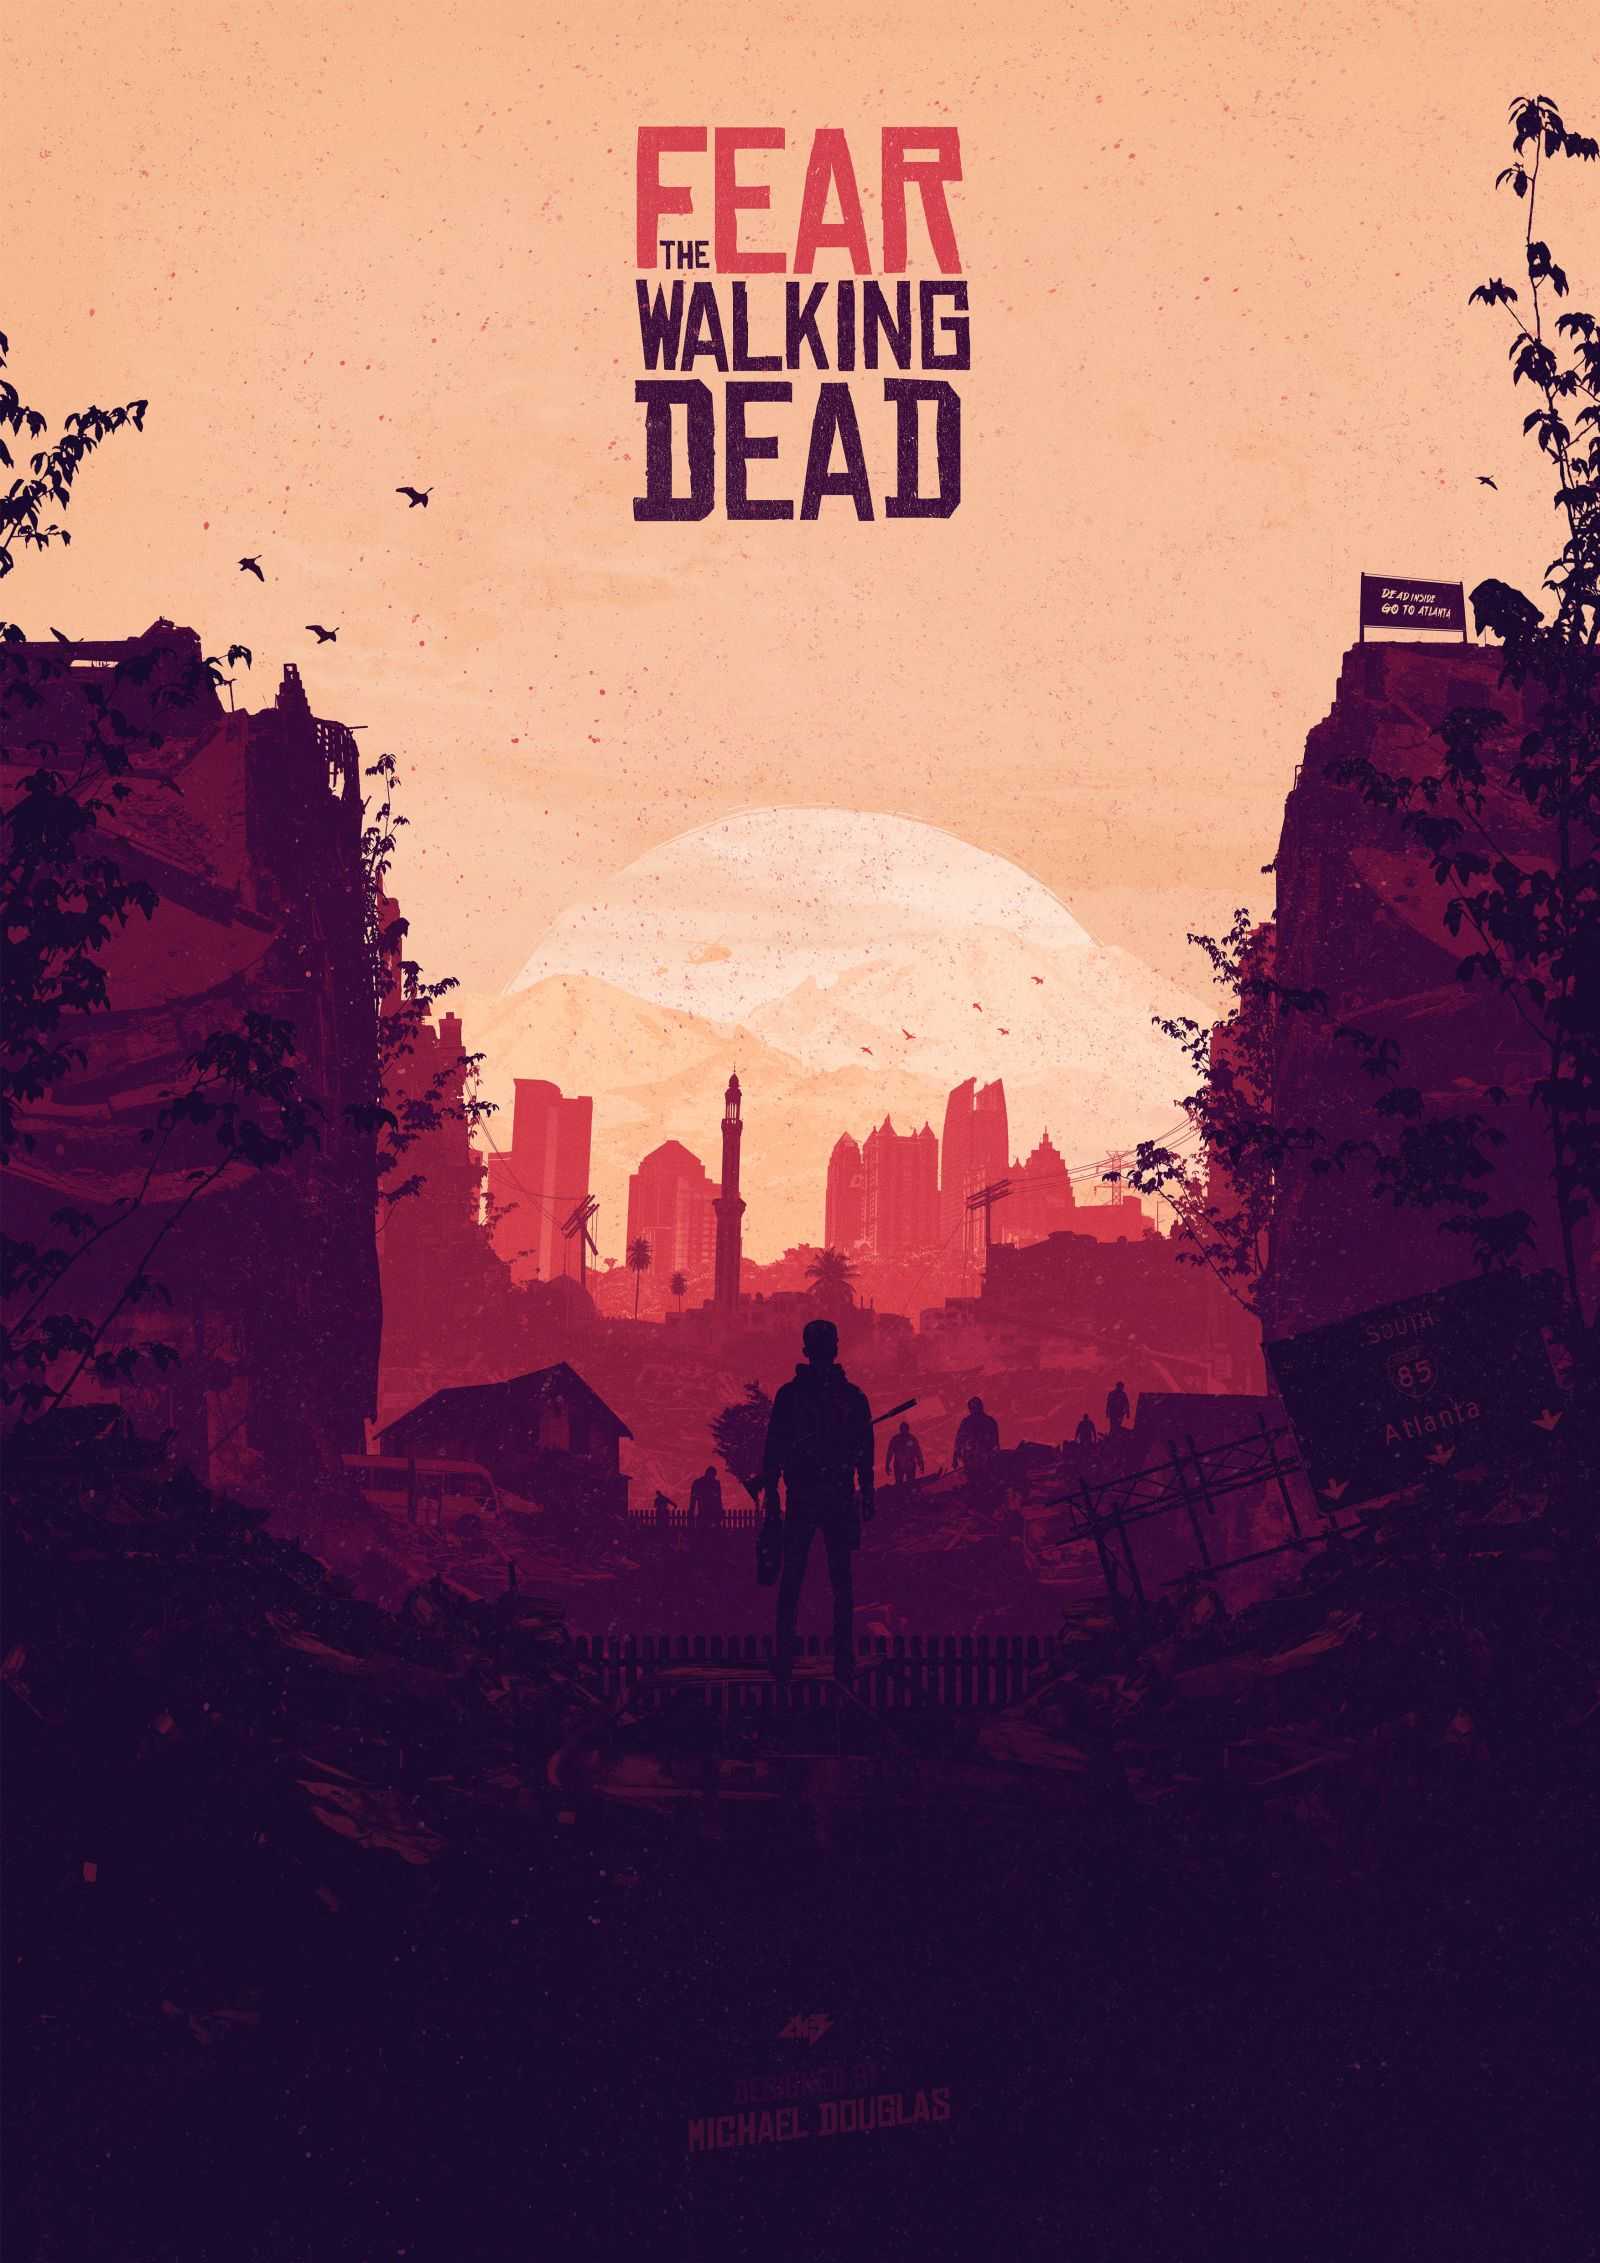 Fear The Walking Dead The Walking Dead Poster Fear The Walking